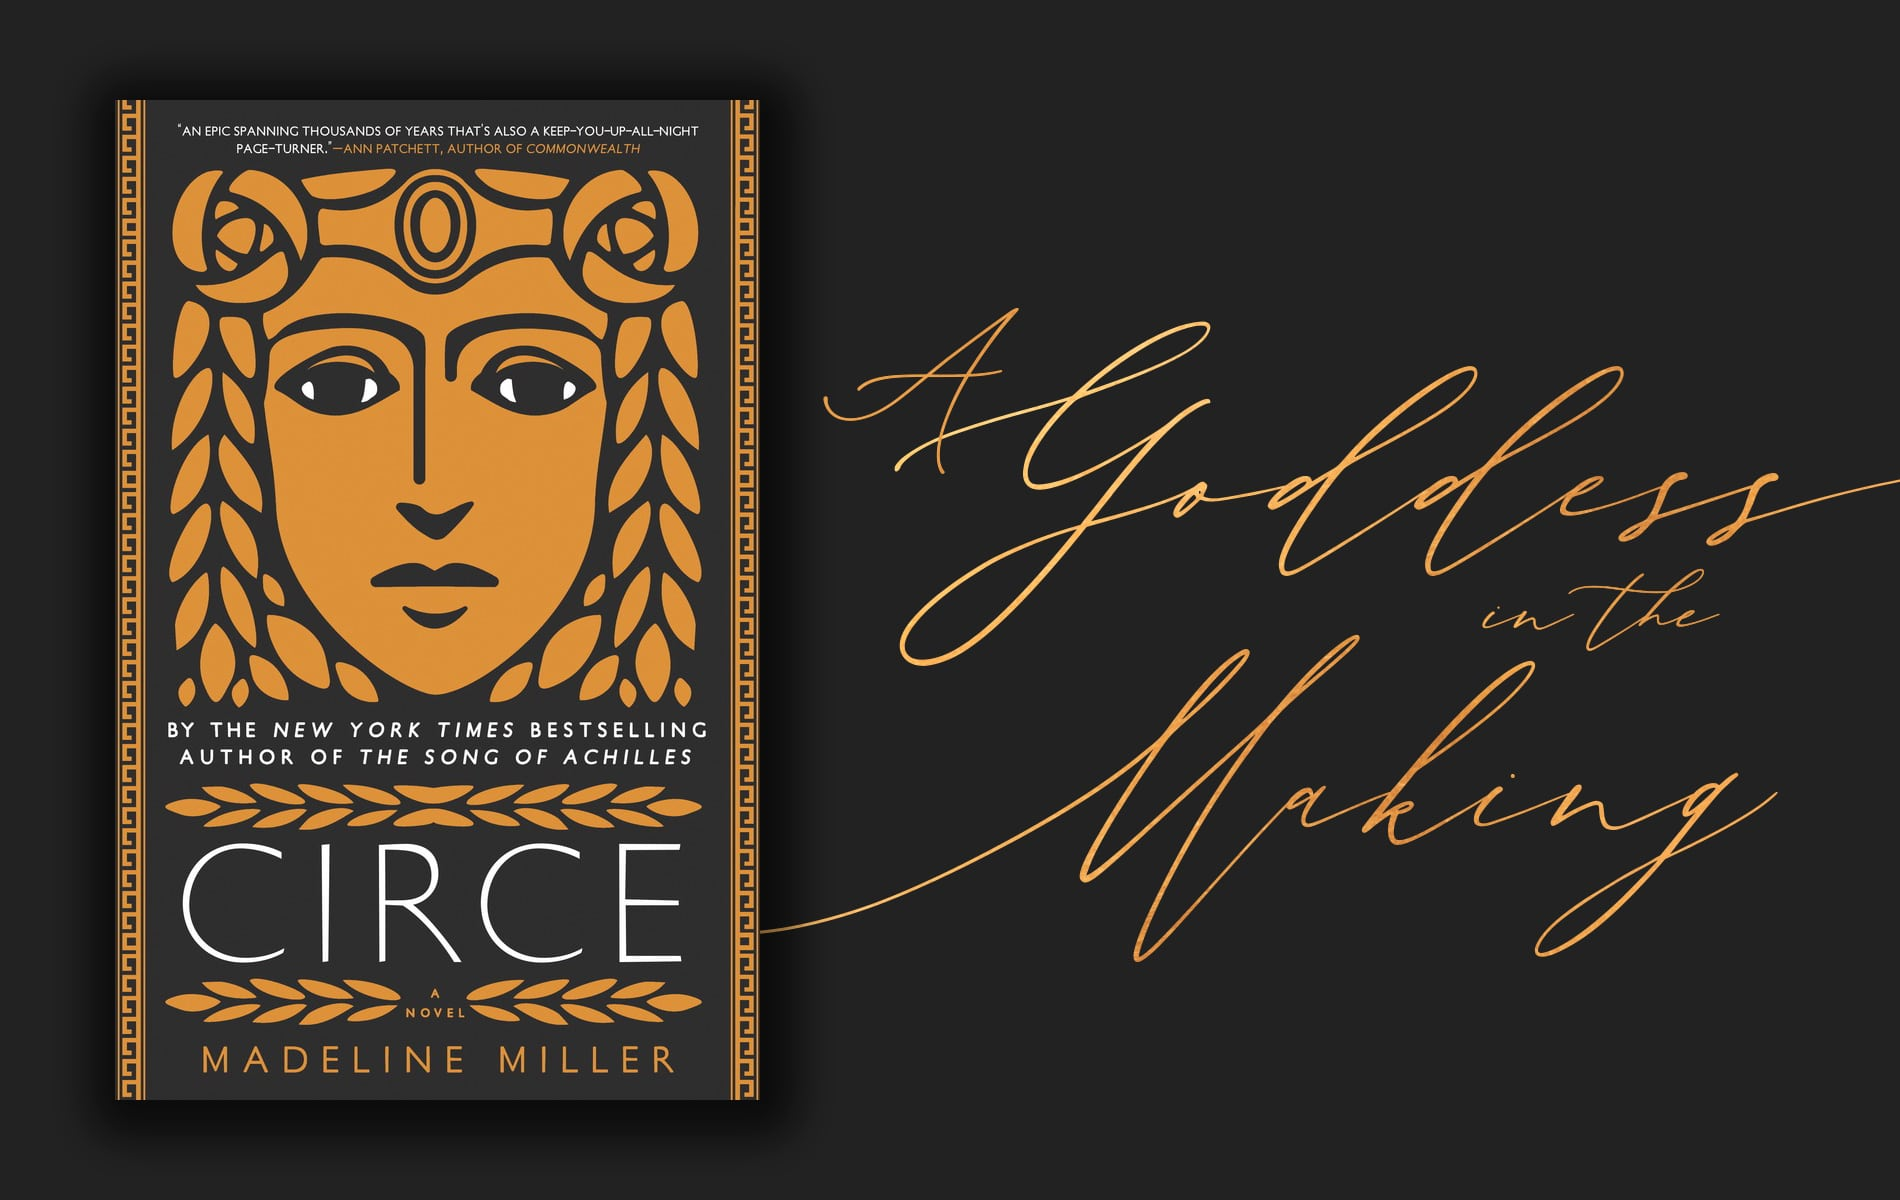 Circe A Novel by Madeline Miller, The Readers Corner VIE Book Club